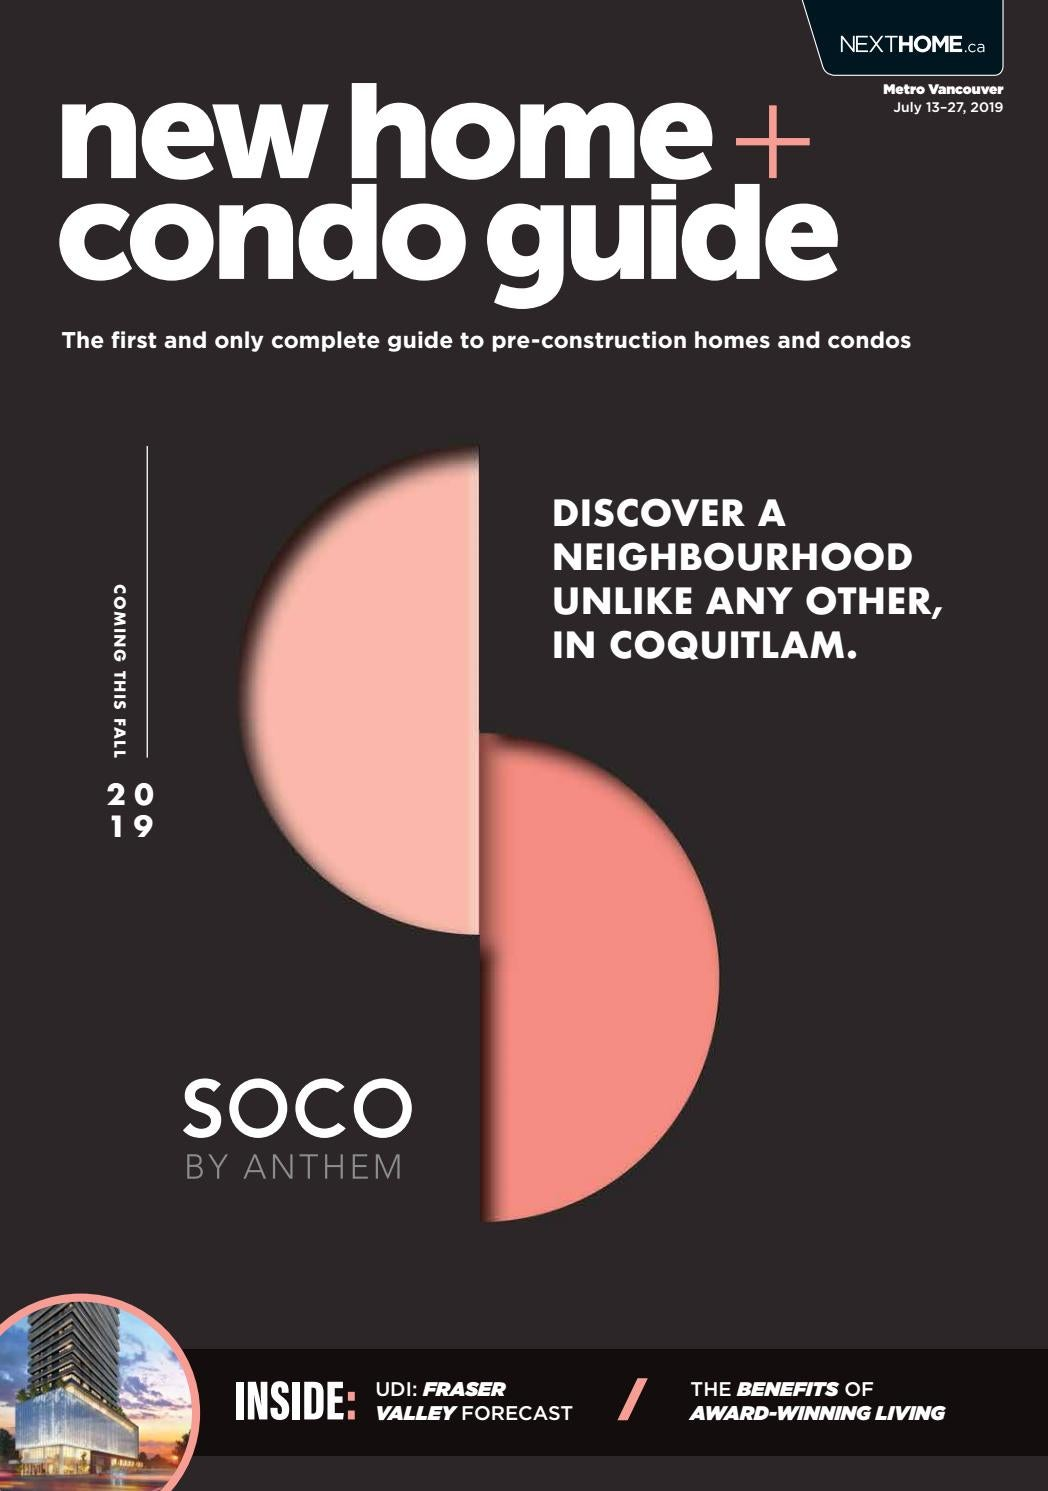 Vancouver New Home Condo Guide July 13 2019 By Nexthome